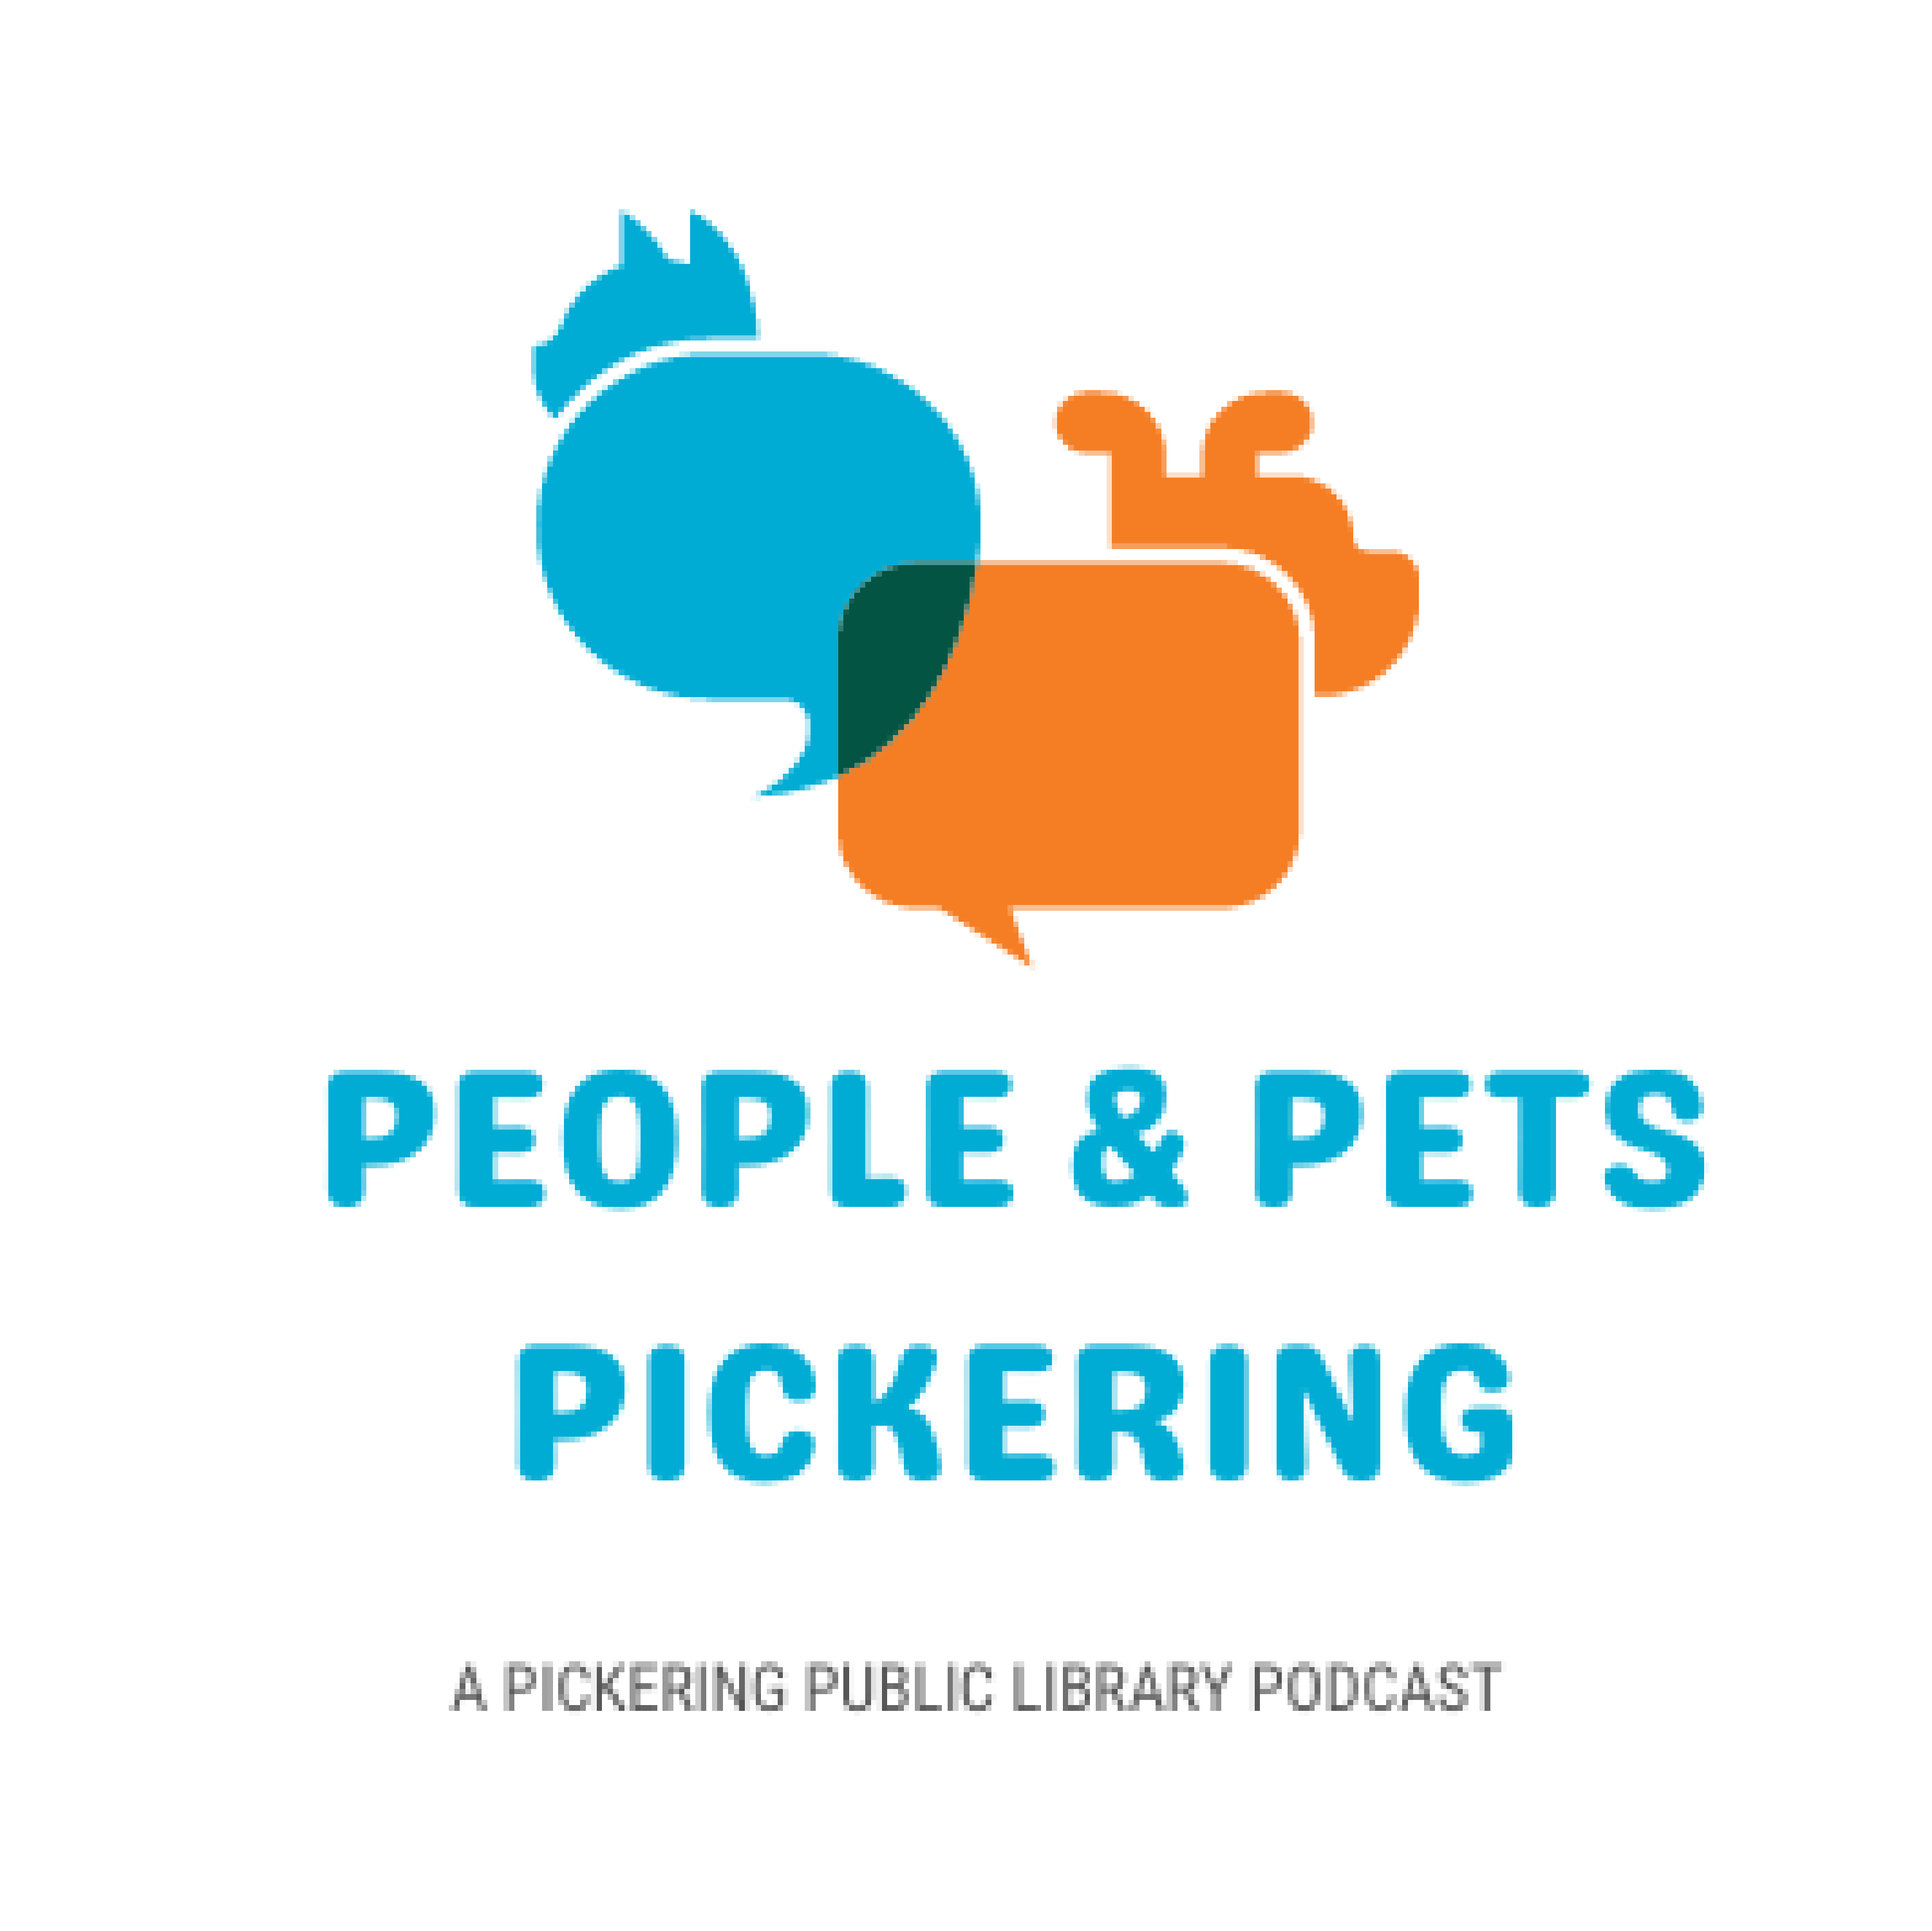 People & Pets - A Pickering Library Podcast